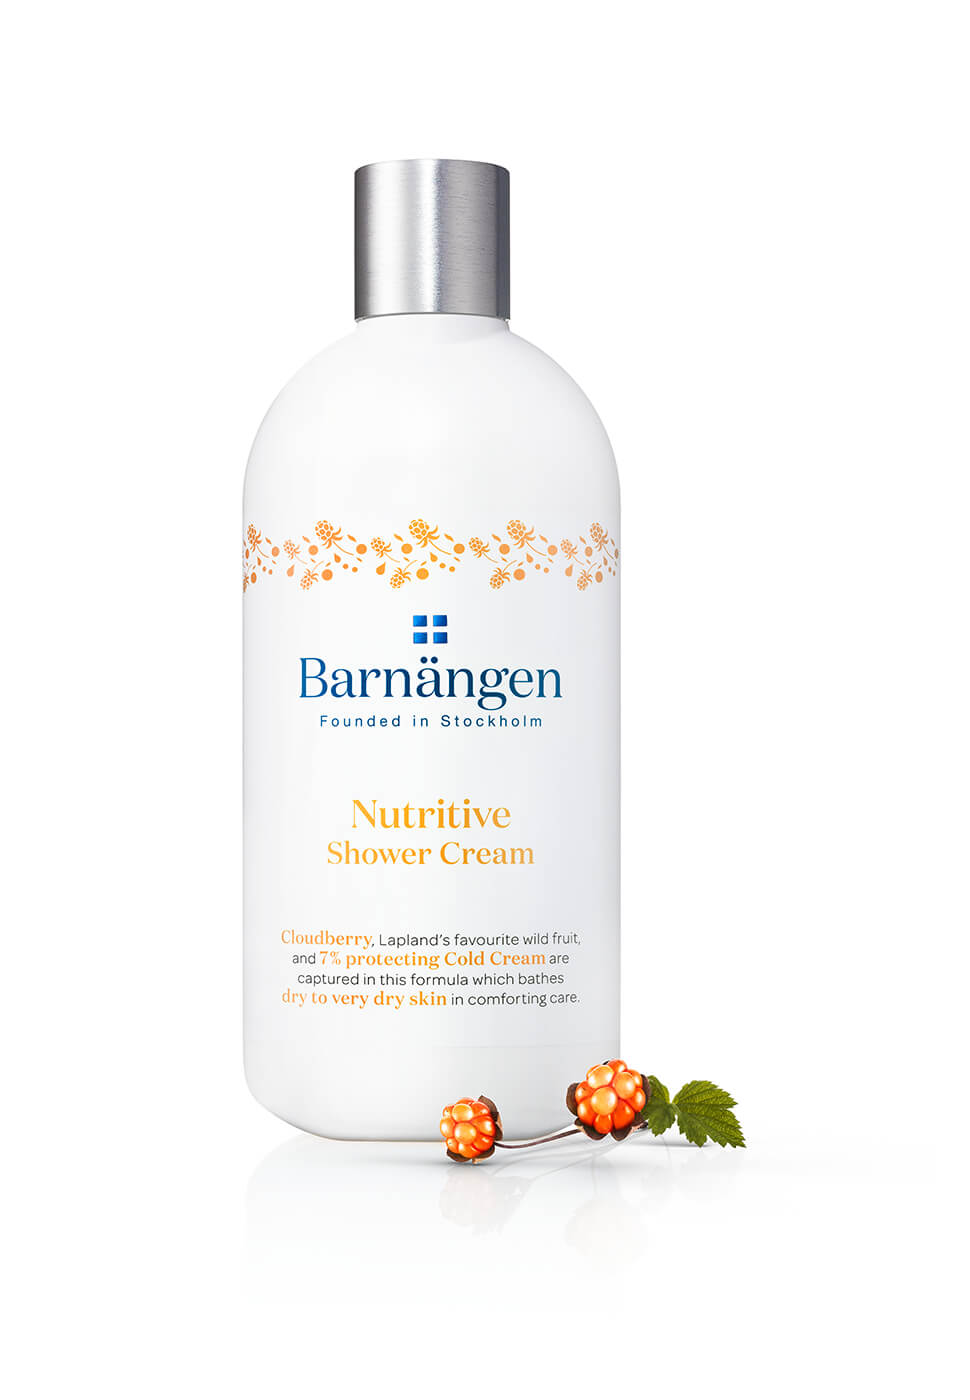 barnangen_com_nordic_care_nutritive_shower_cream_970x1400